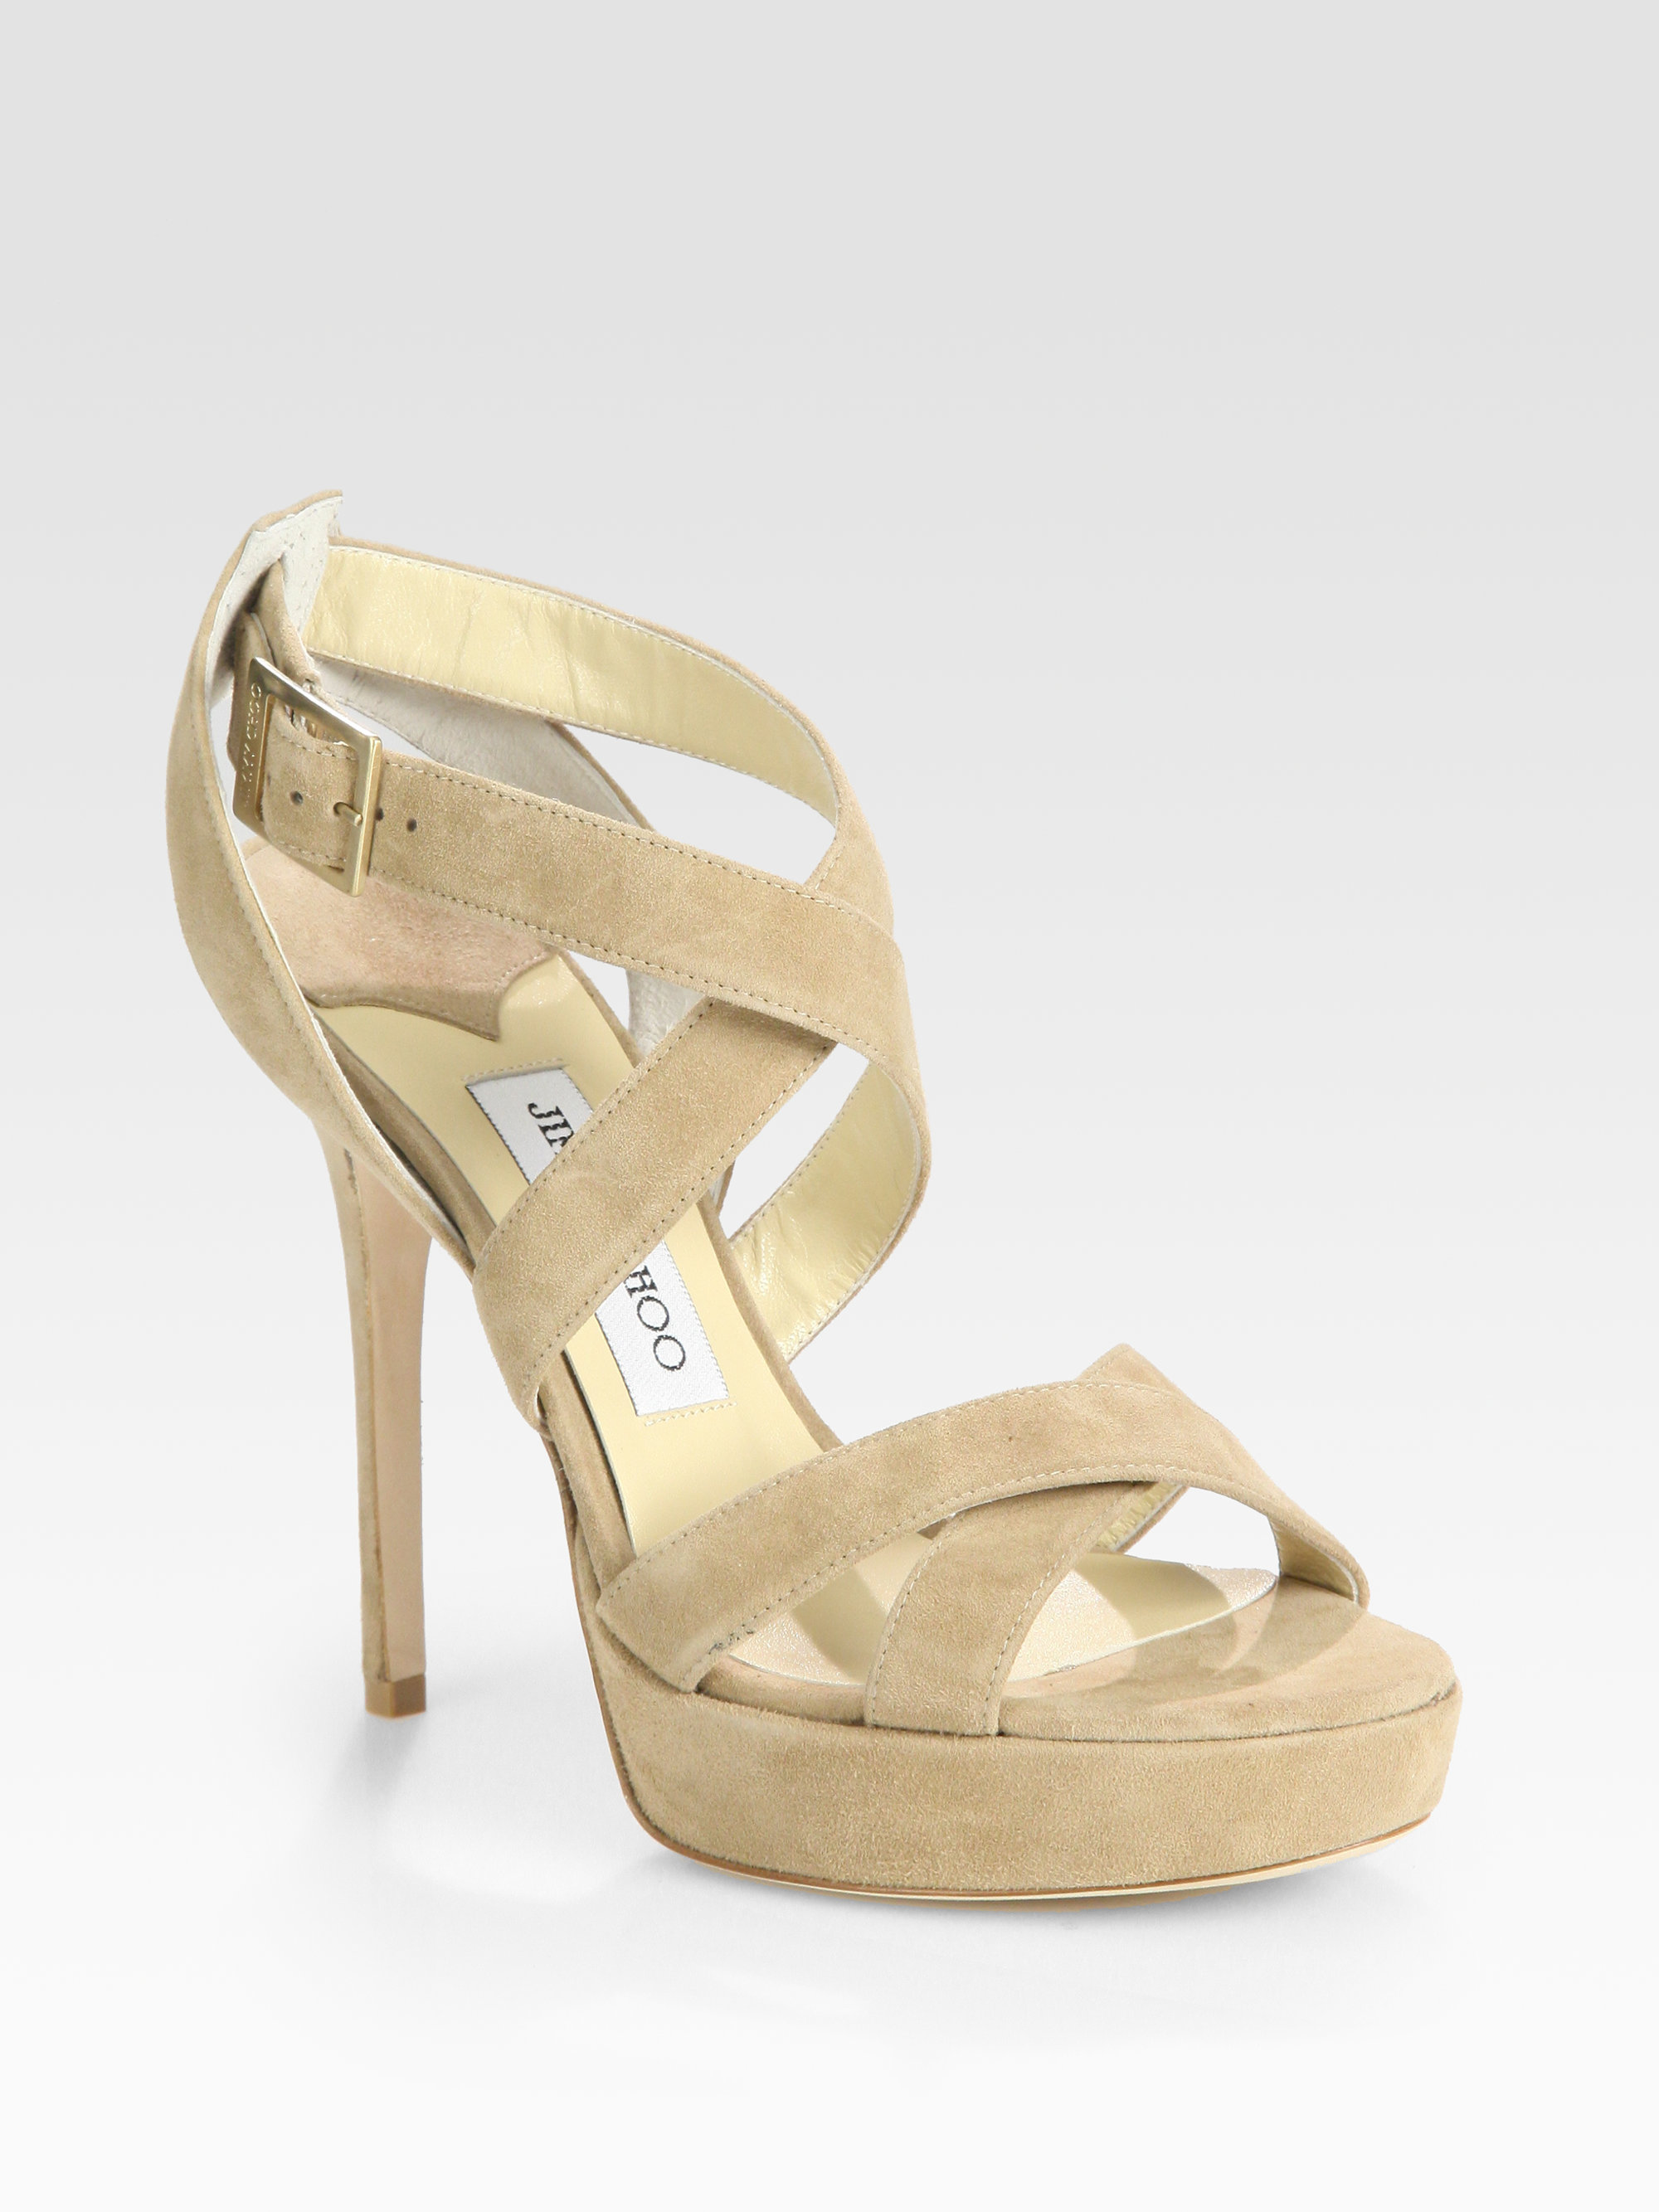 de02741cc60f Lyst - Jimmy Choo Vamp Sue Strappy Suede Platform Sandals in Natural